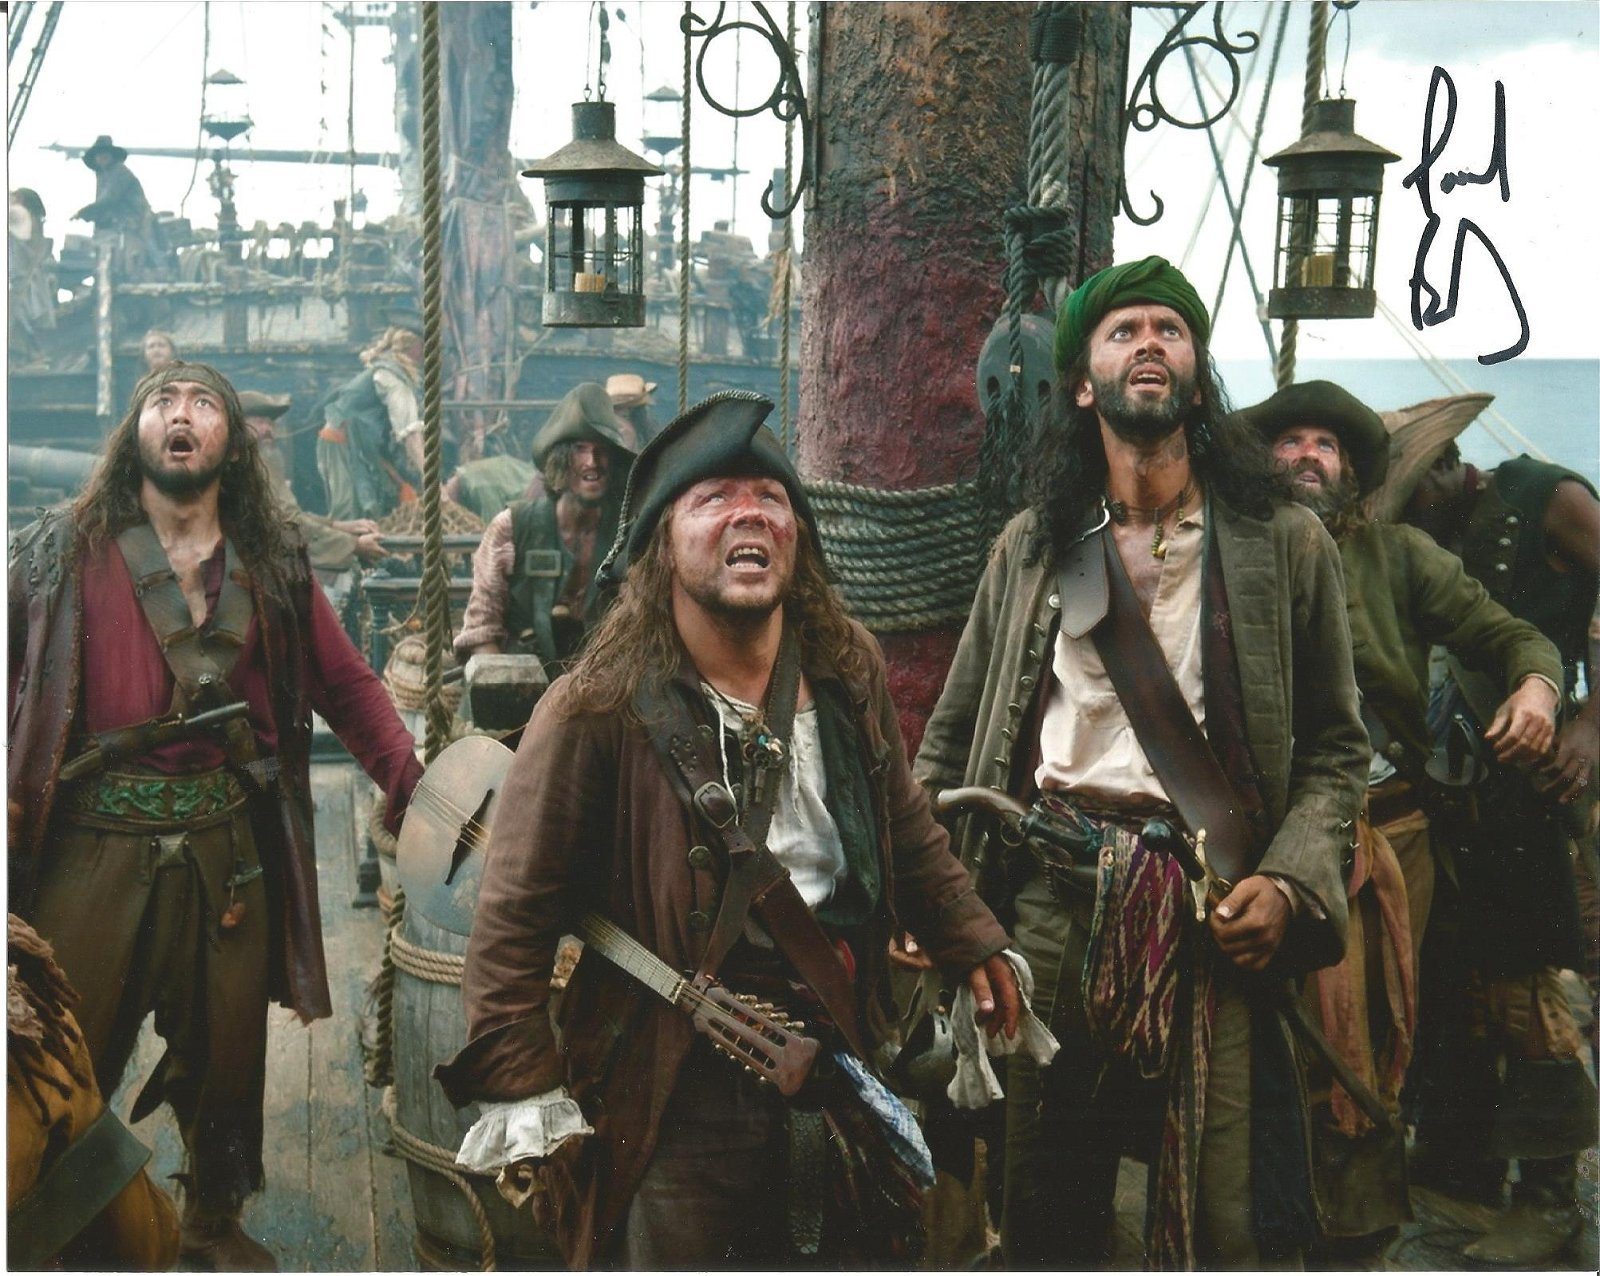 Paul Bazely signed 10x8 colour photo from Pirates of